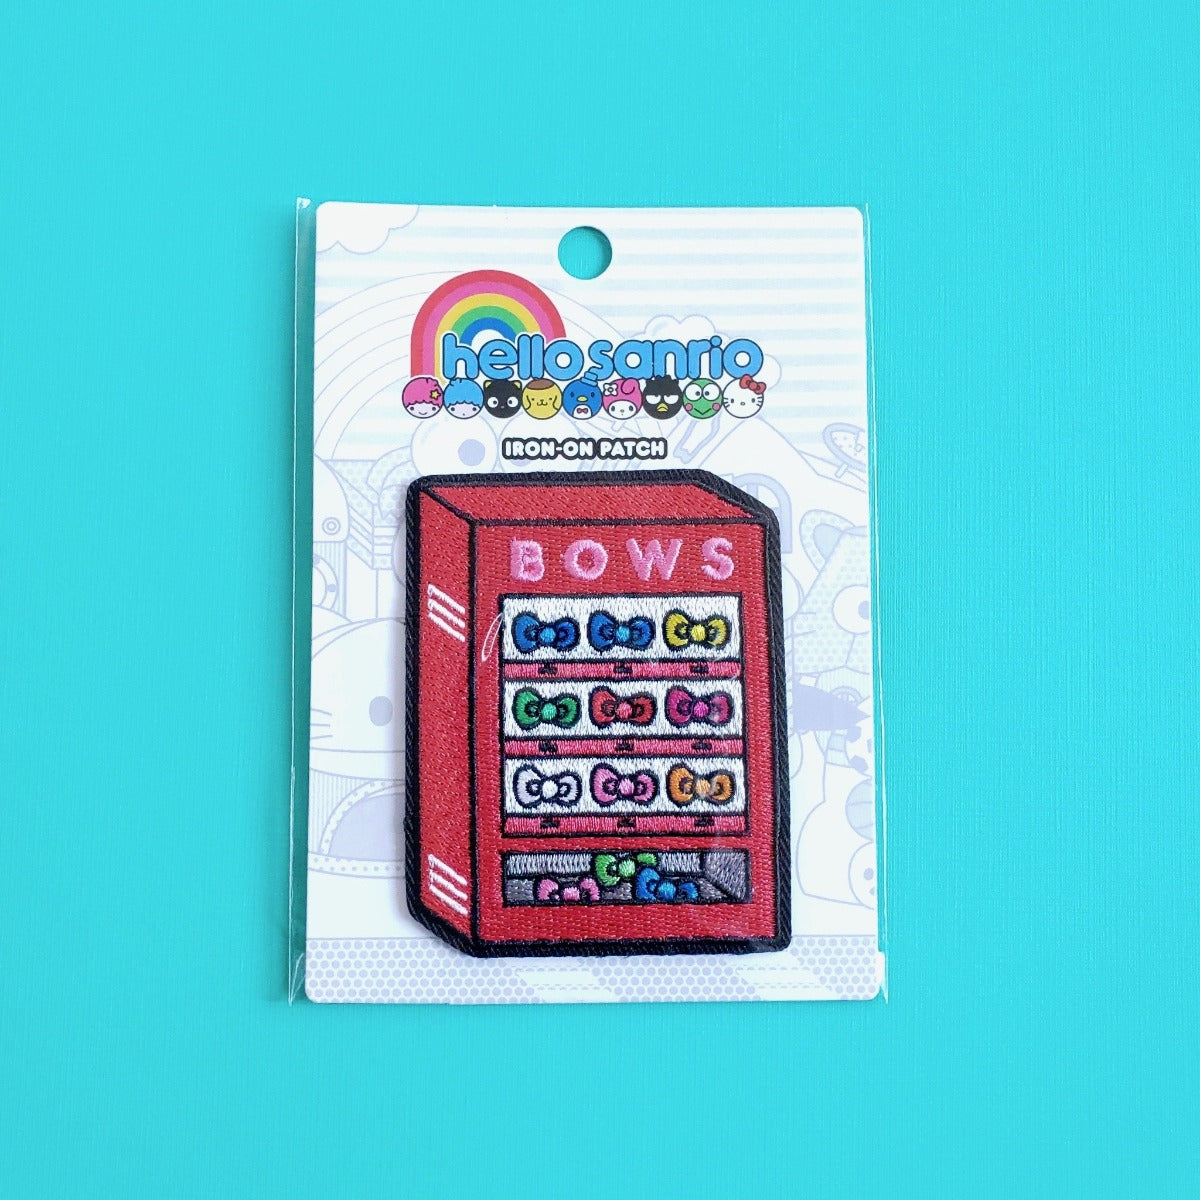 Loungefly Hello Sanrio Bows Vending Machine iron-on patch front